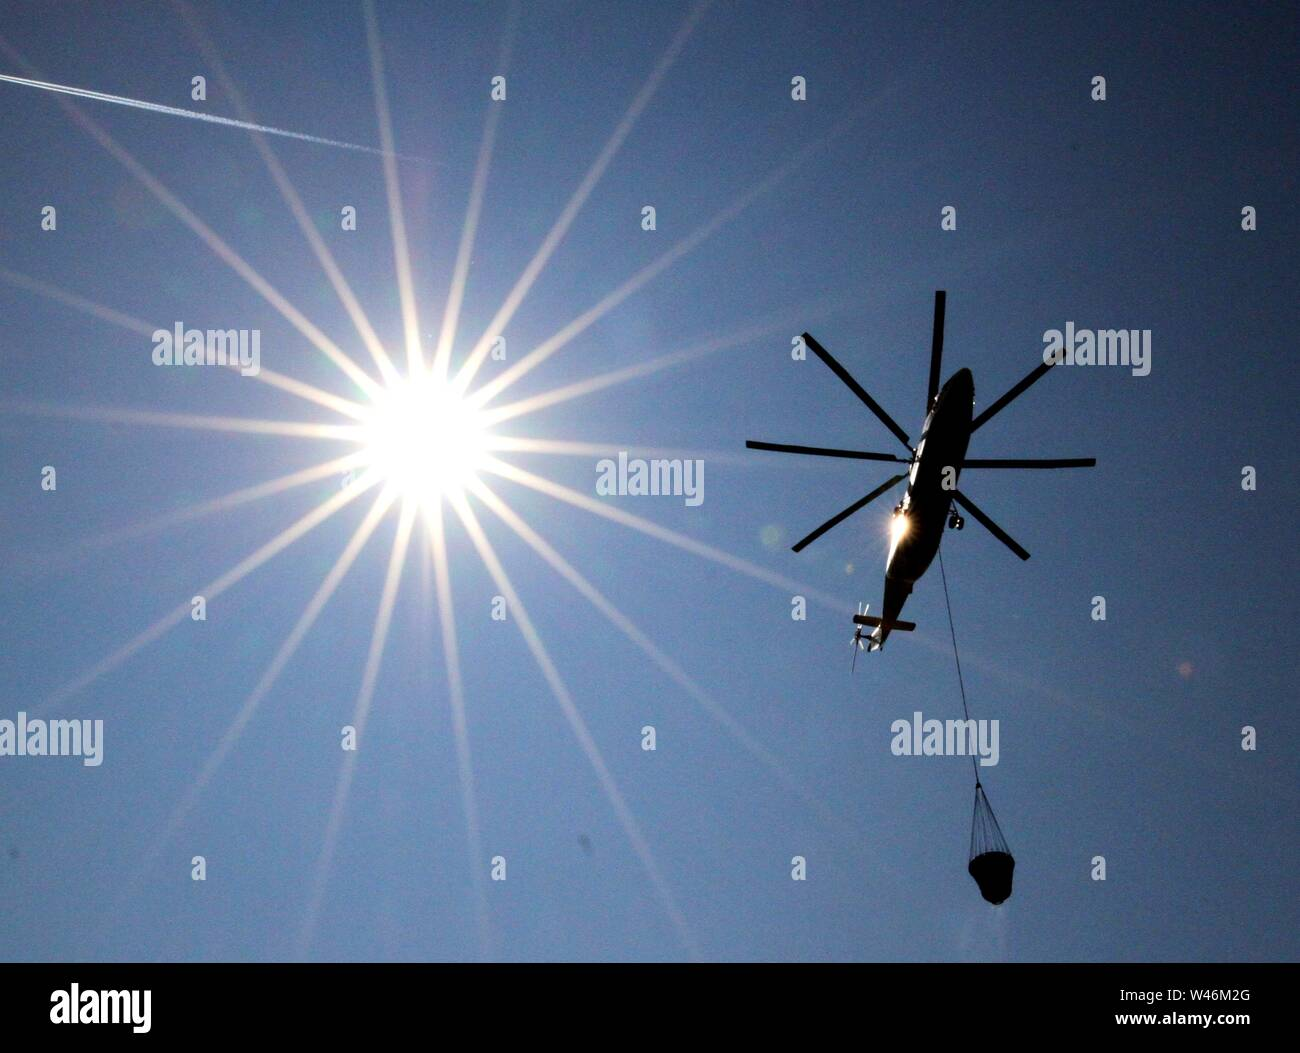 Minsk, Belarus. 20th July, 2019. A firefighting helicopter flies past during an event to honor firefighters and rescuers, in Minsk, Belarus, July 20, 2019. Credit: Zhinkov Henadz/Xinhua/Alamy Live News - Stock Image